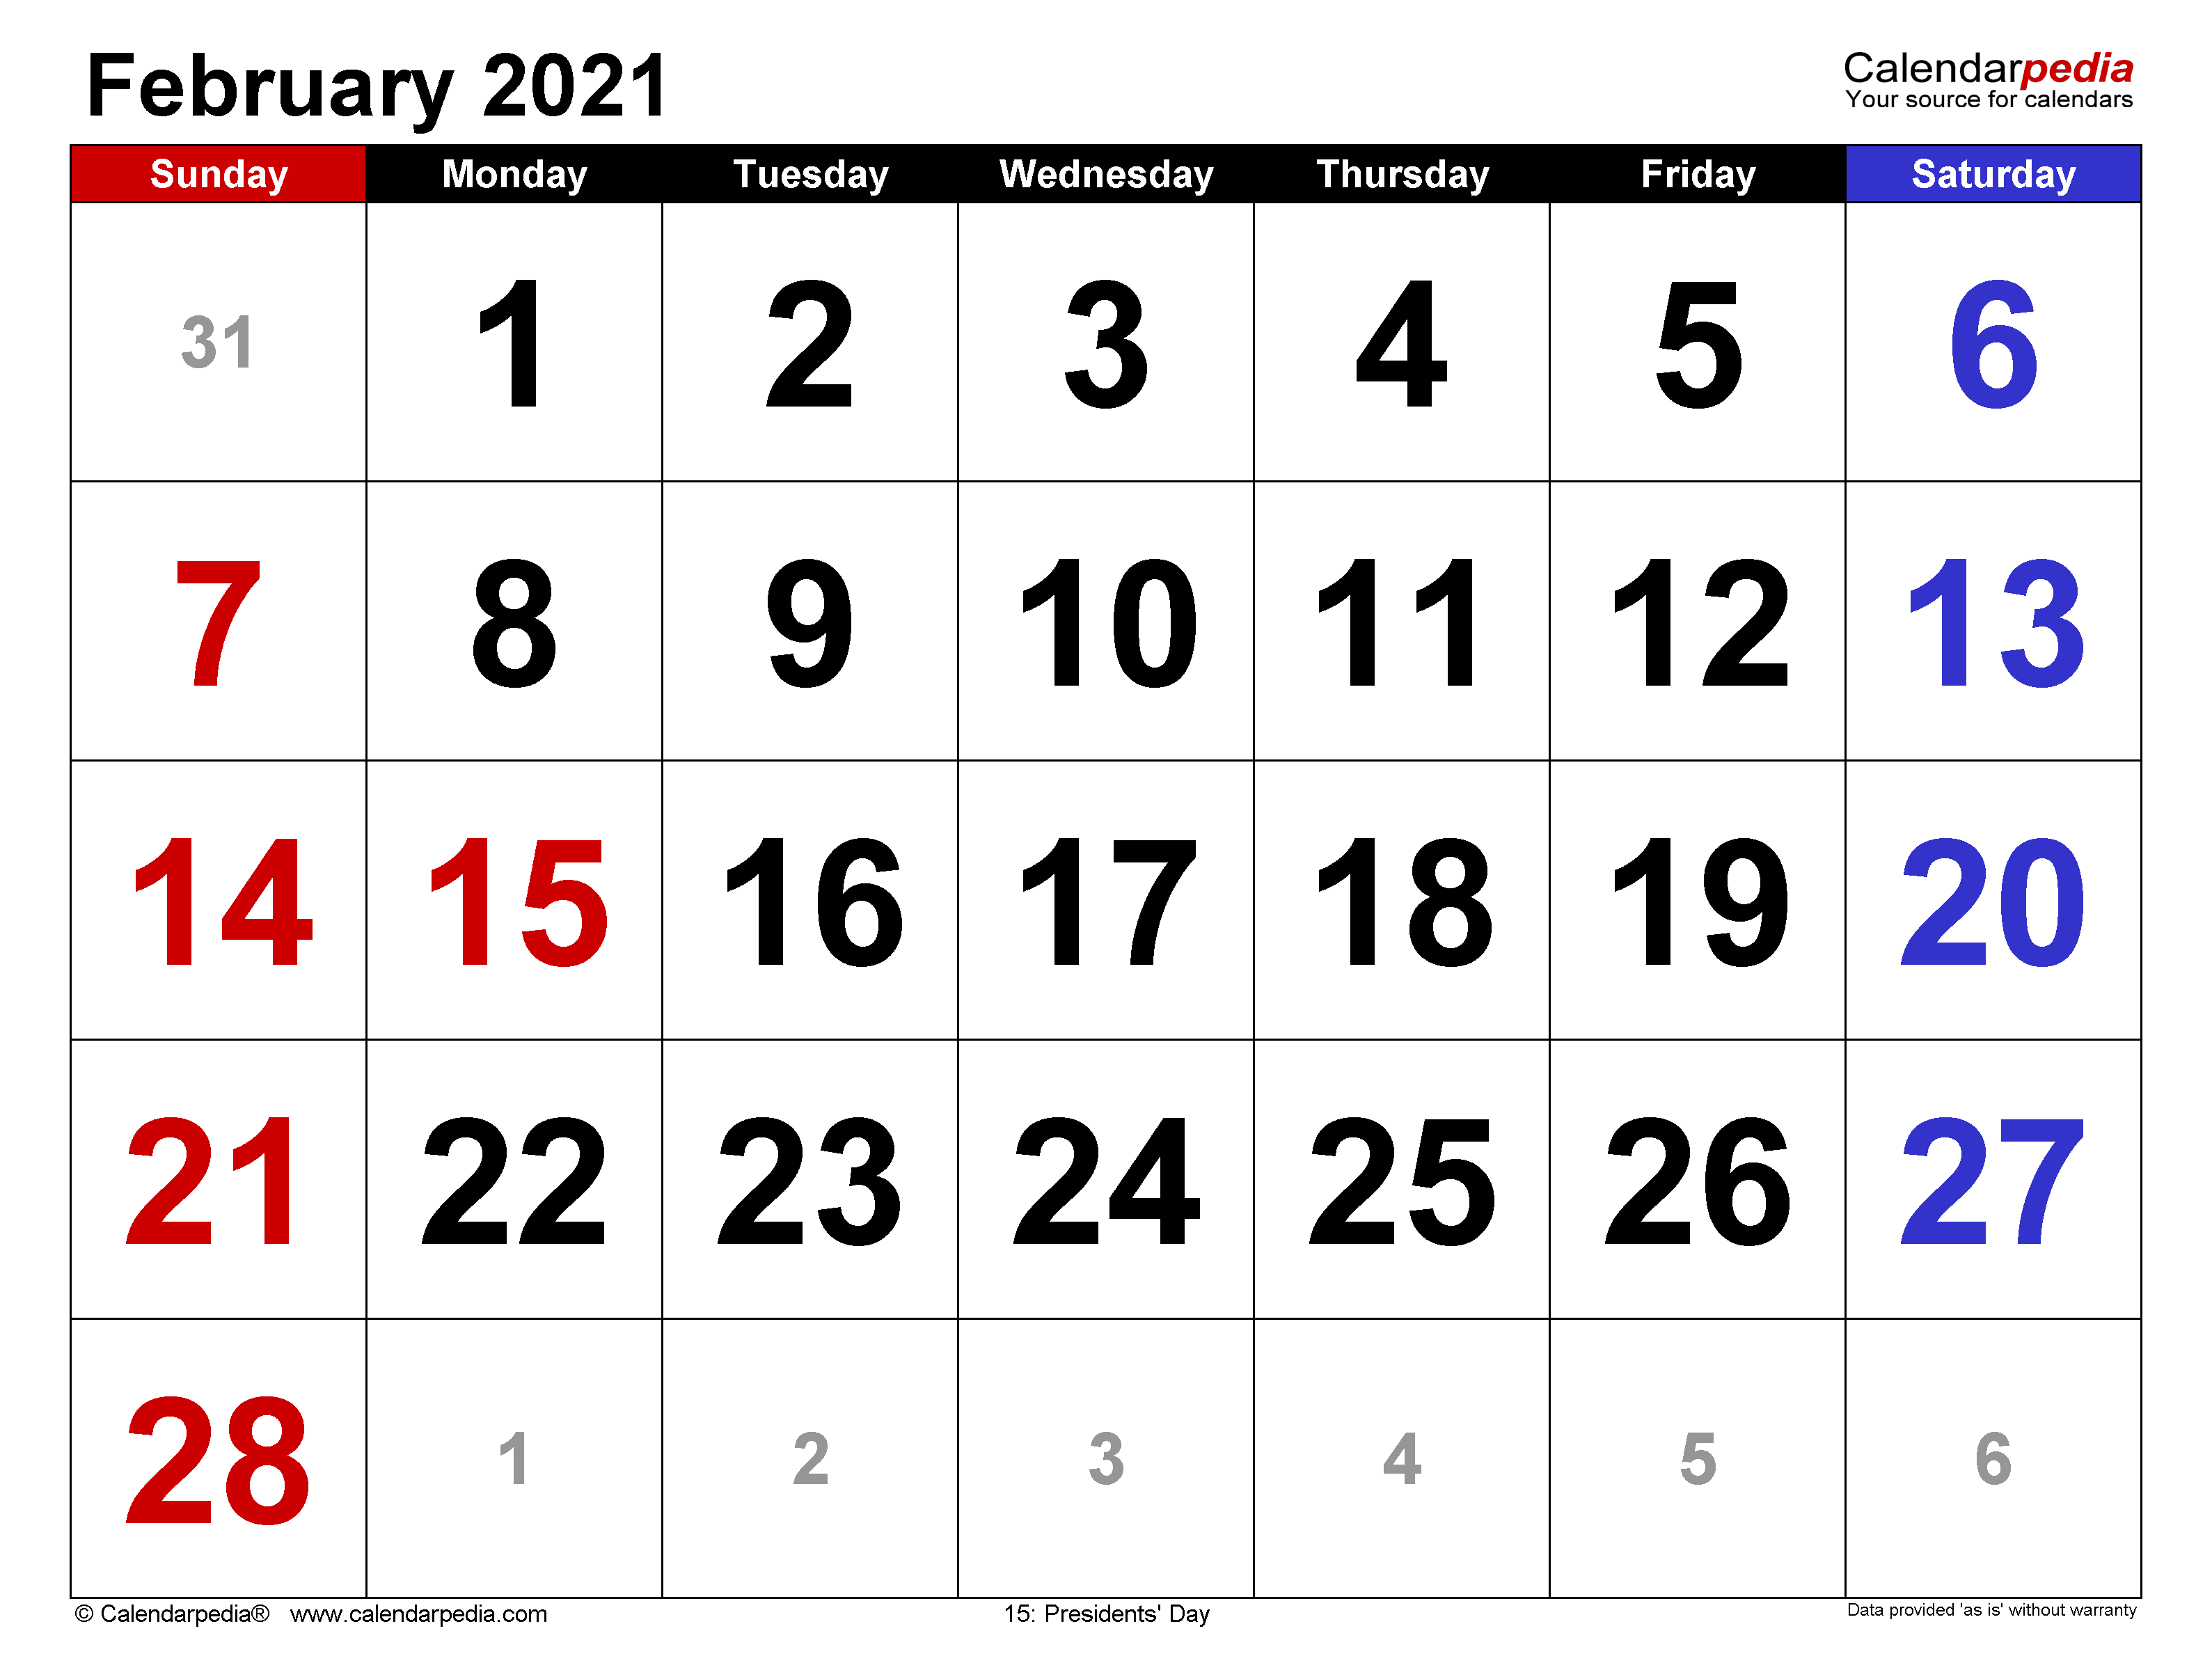 February 2021 Calendar Templates For Word Excel And Pdf